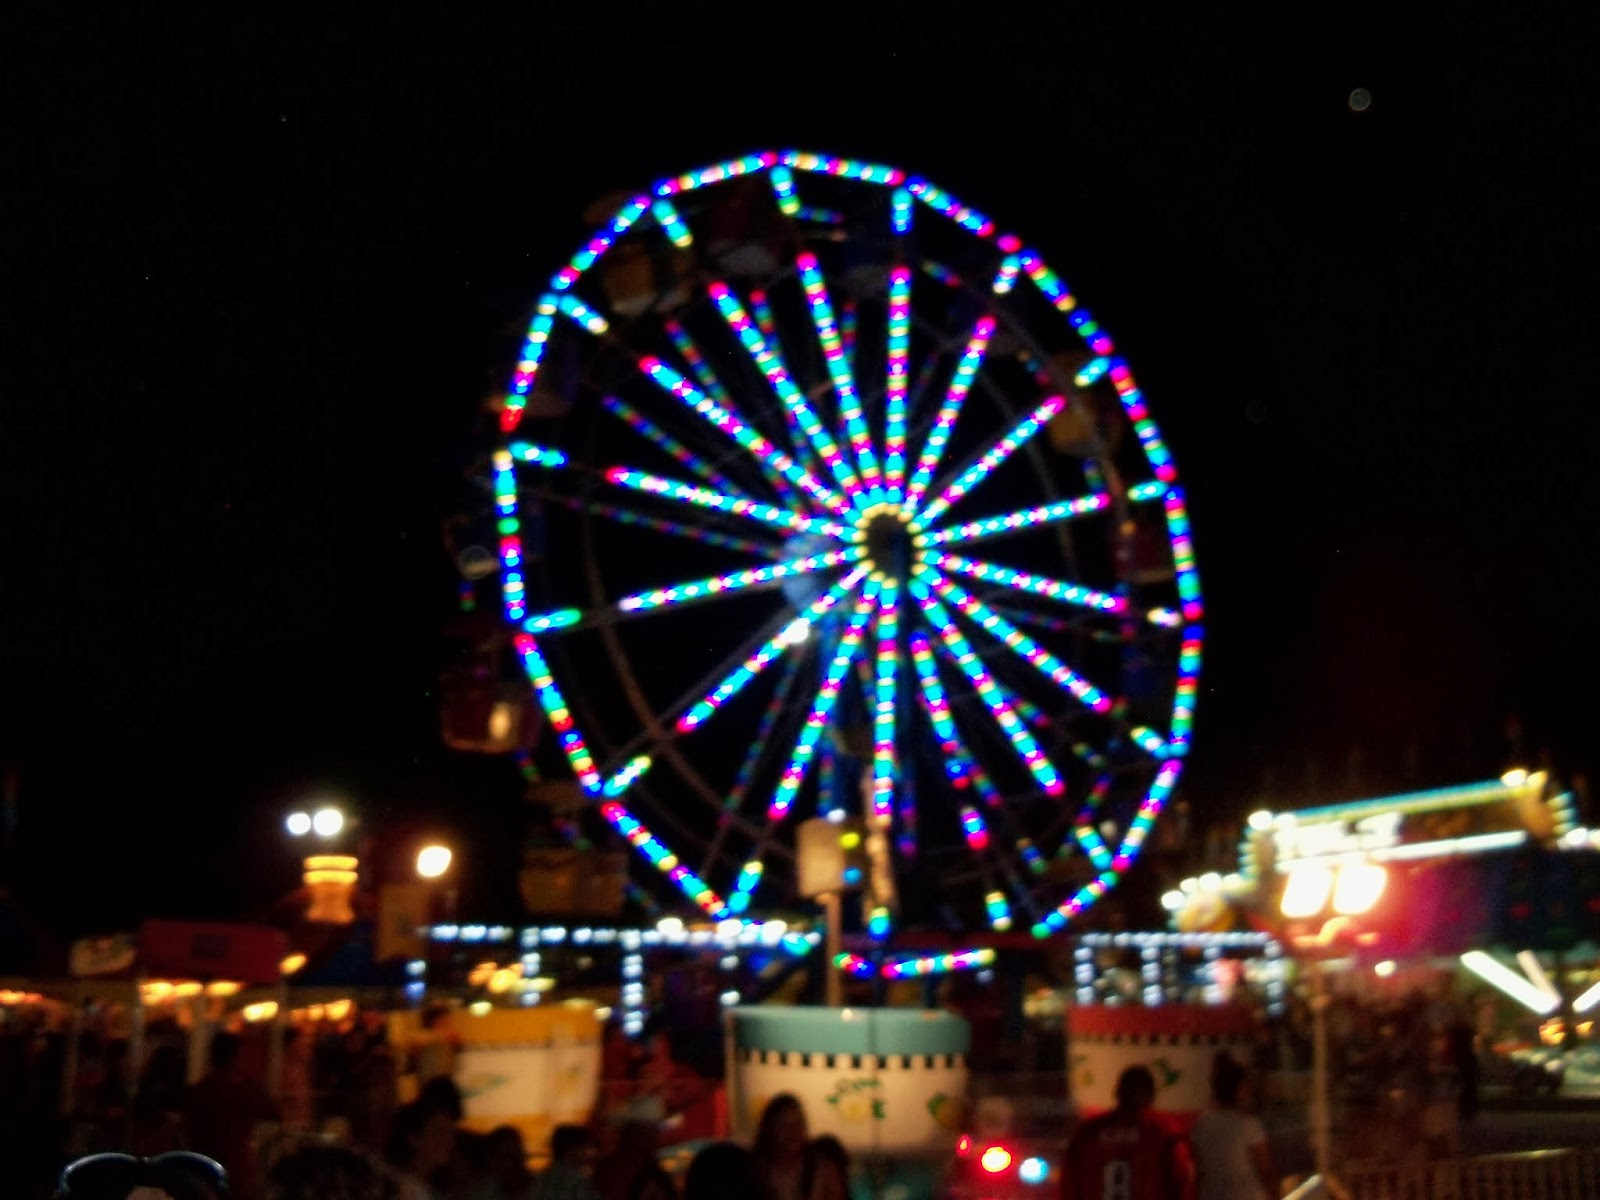 Fort Bend County Fair 2013 - 115_8023.JPG